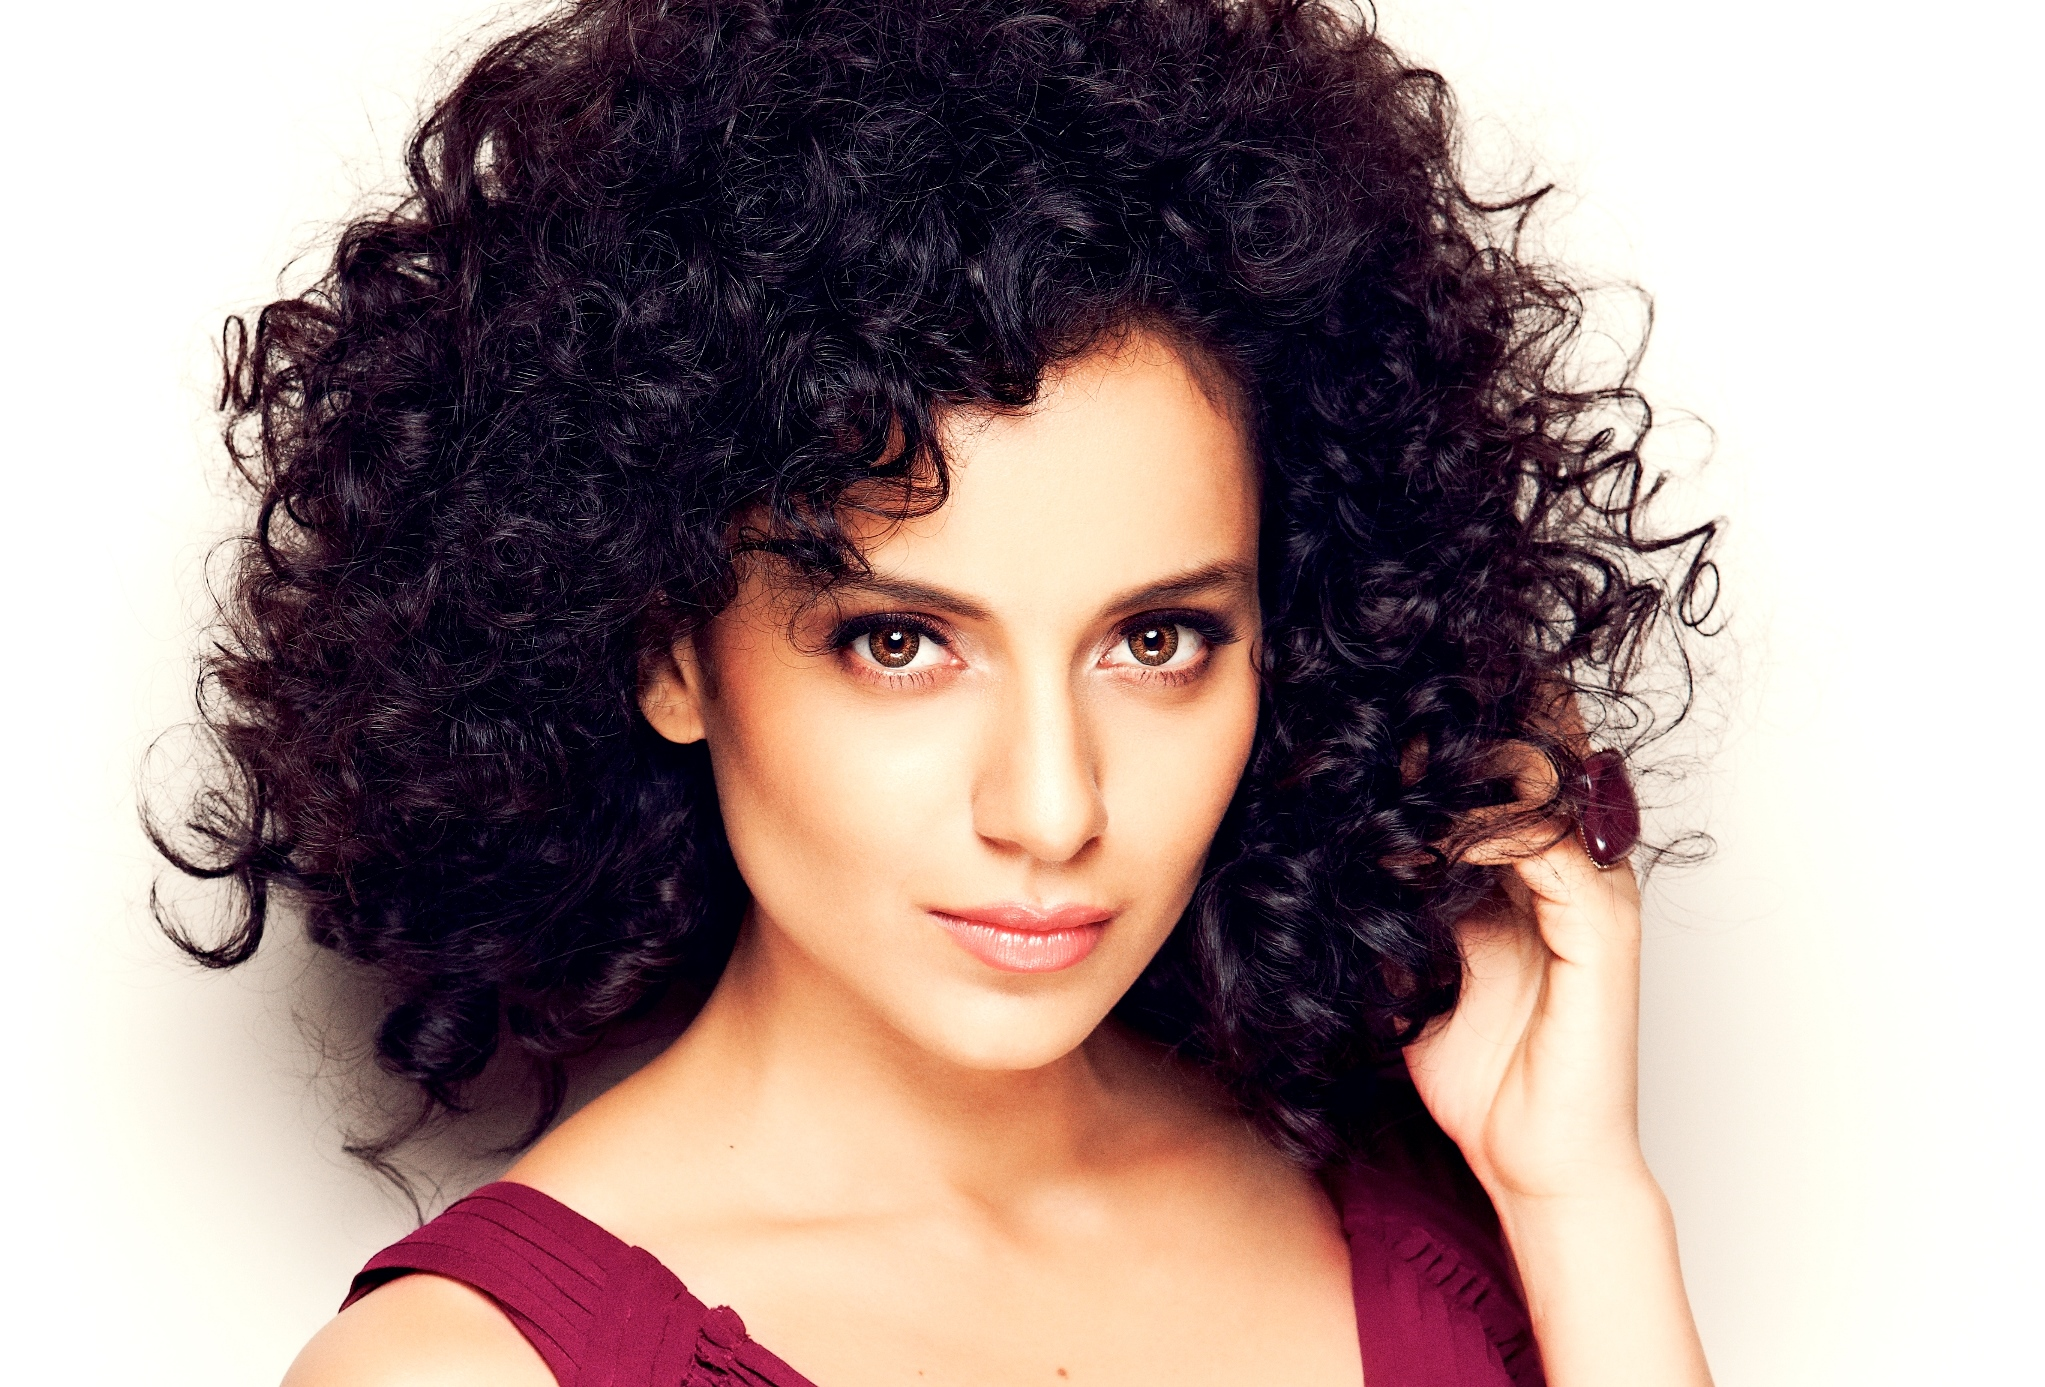 Kangana won the National award twice